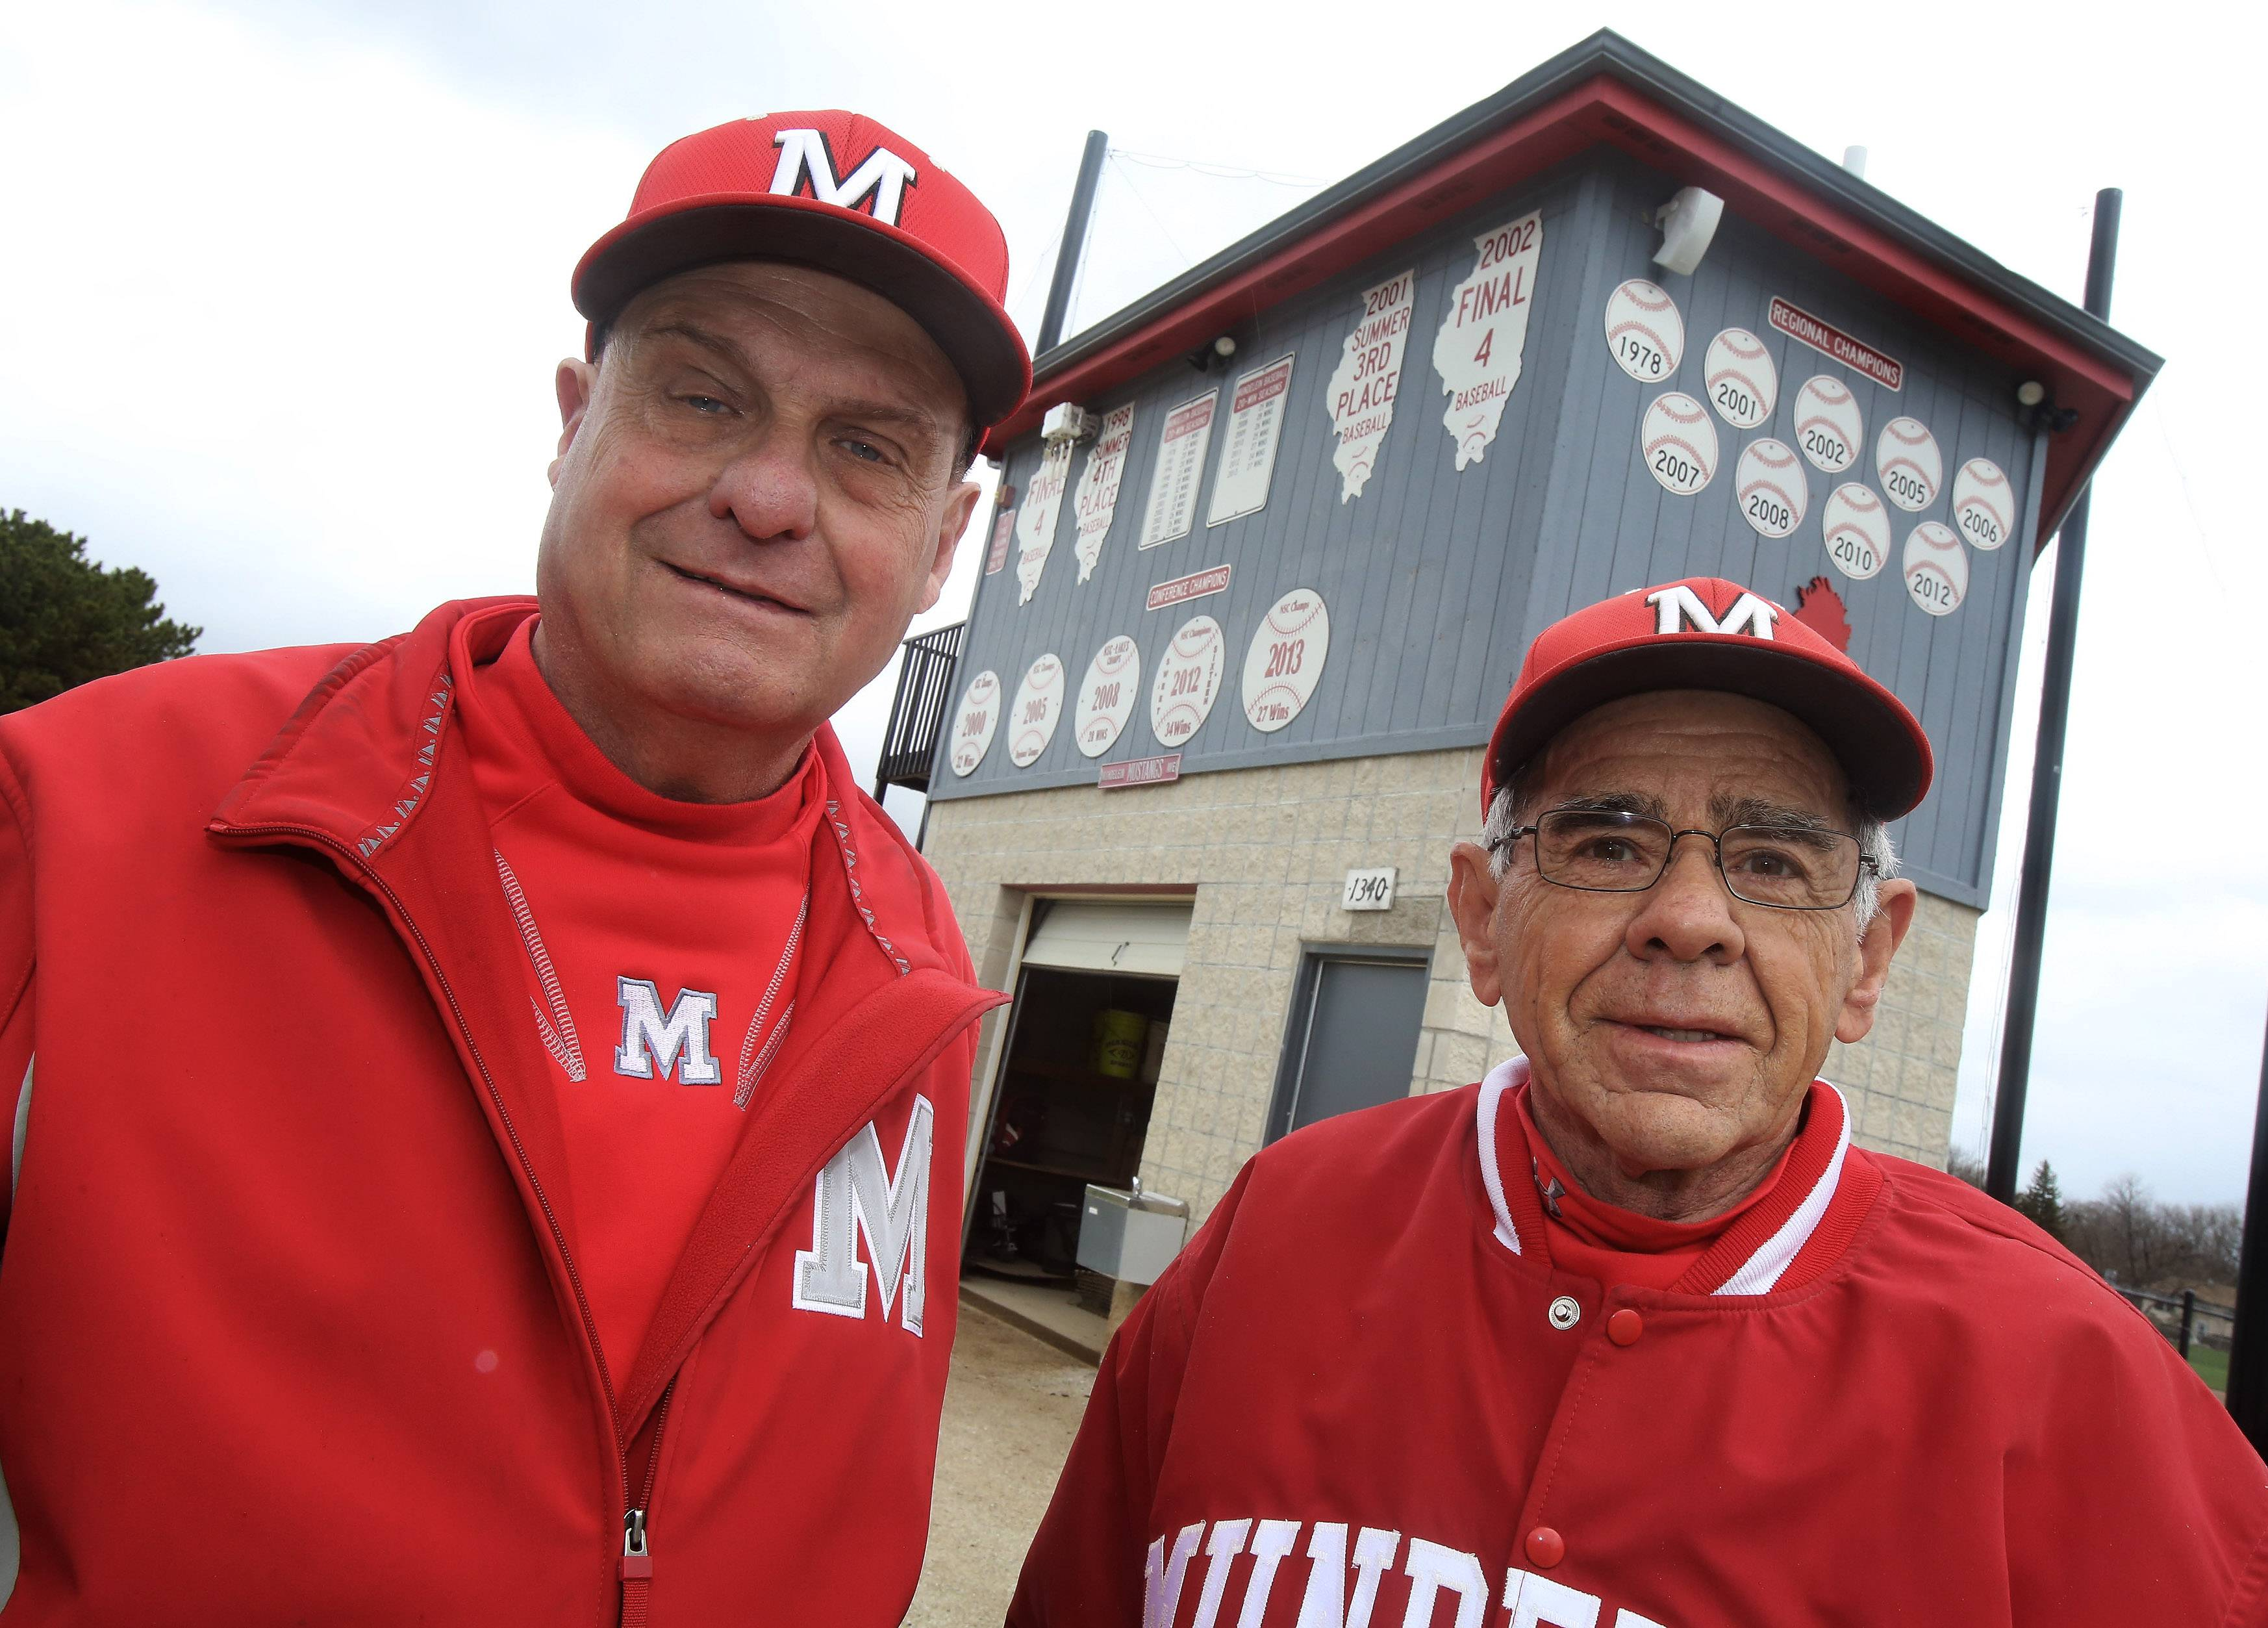 Mundelein assistant baseball coaches Fred Picket, left, and Neil McLoughlin have coached together for more than 45 years. Picket is retiring this year after 45 years, and McLoughlin has coached more than 50 years at the high school.